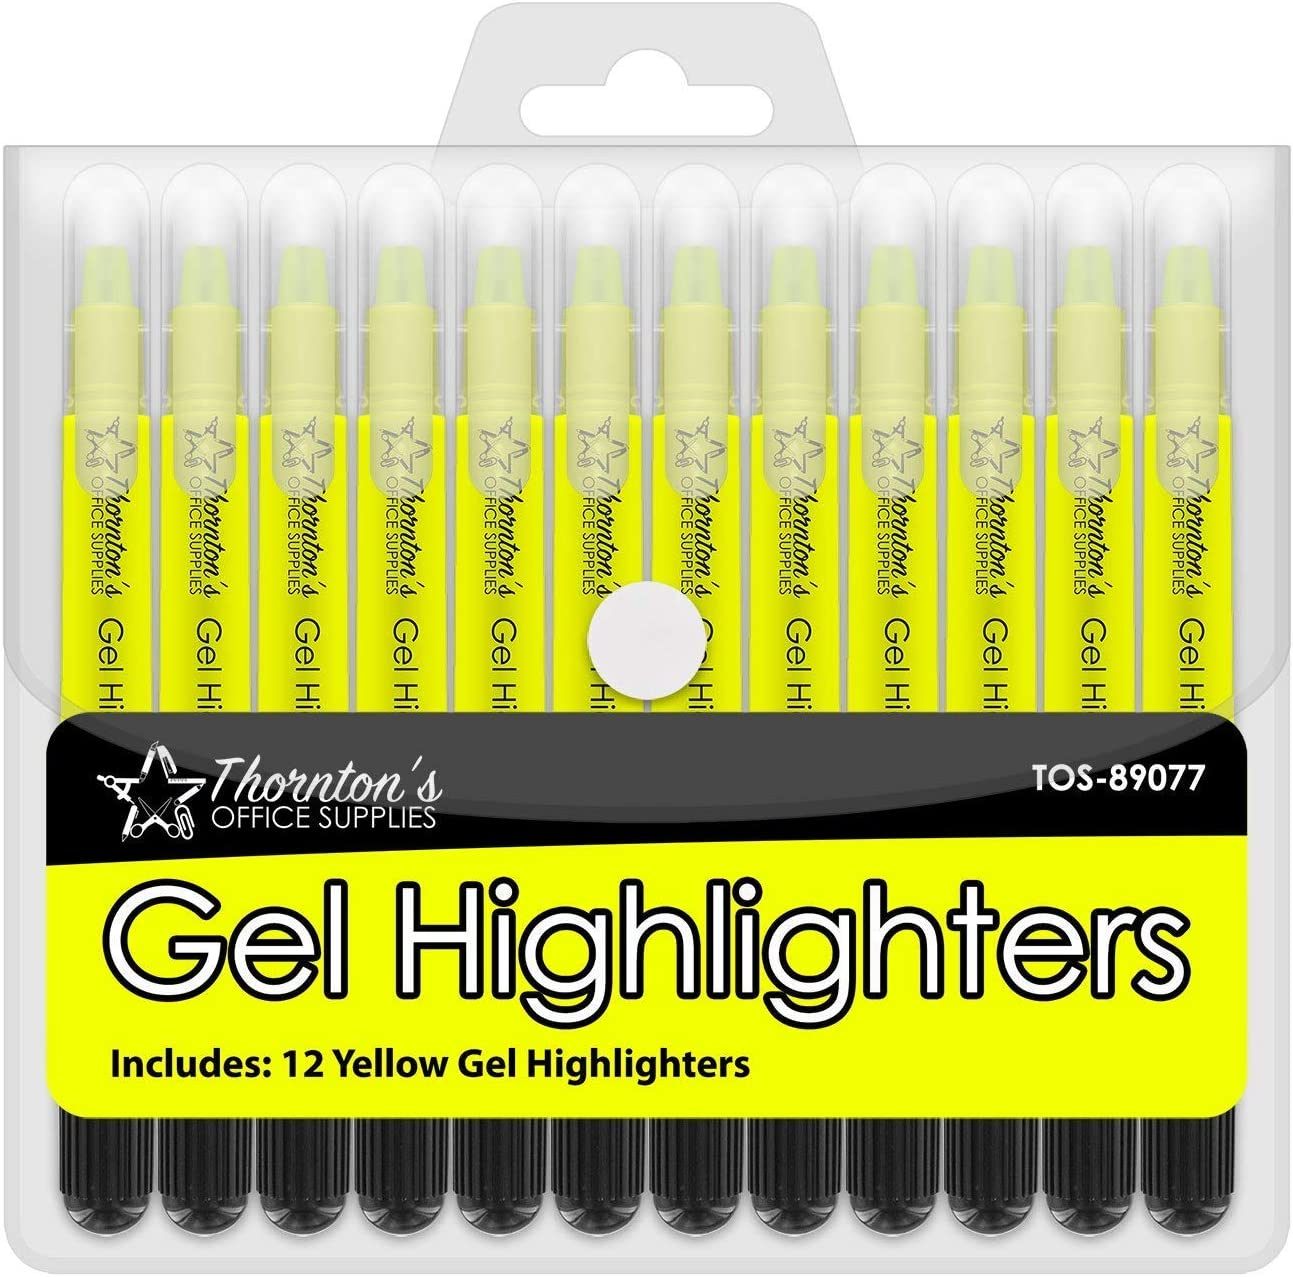 Thornton's Office Supplies School Twist-Retractable Bible Safe No Bleed Through Gel Highlighters Study Kit, Great For Journaling, Pack of 12 (Yellow)